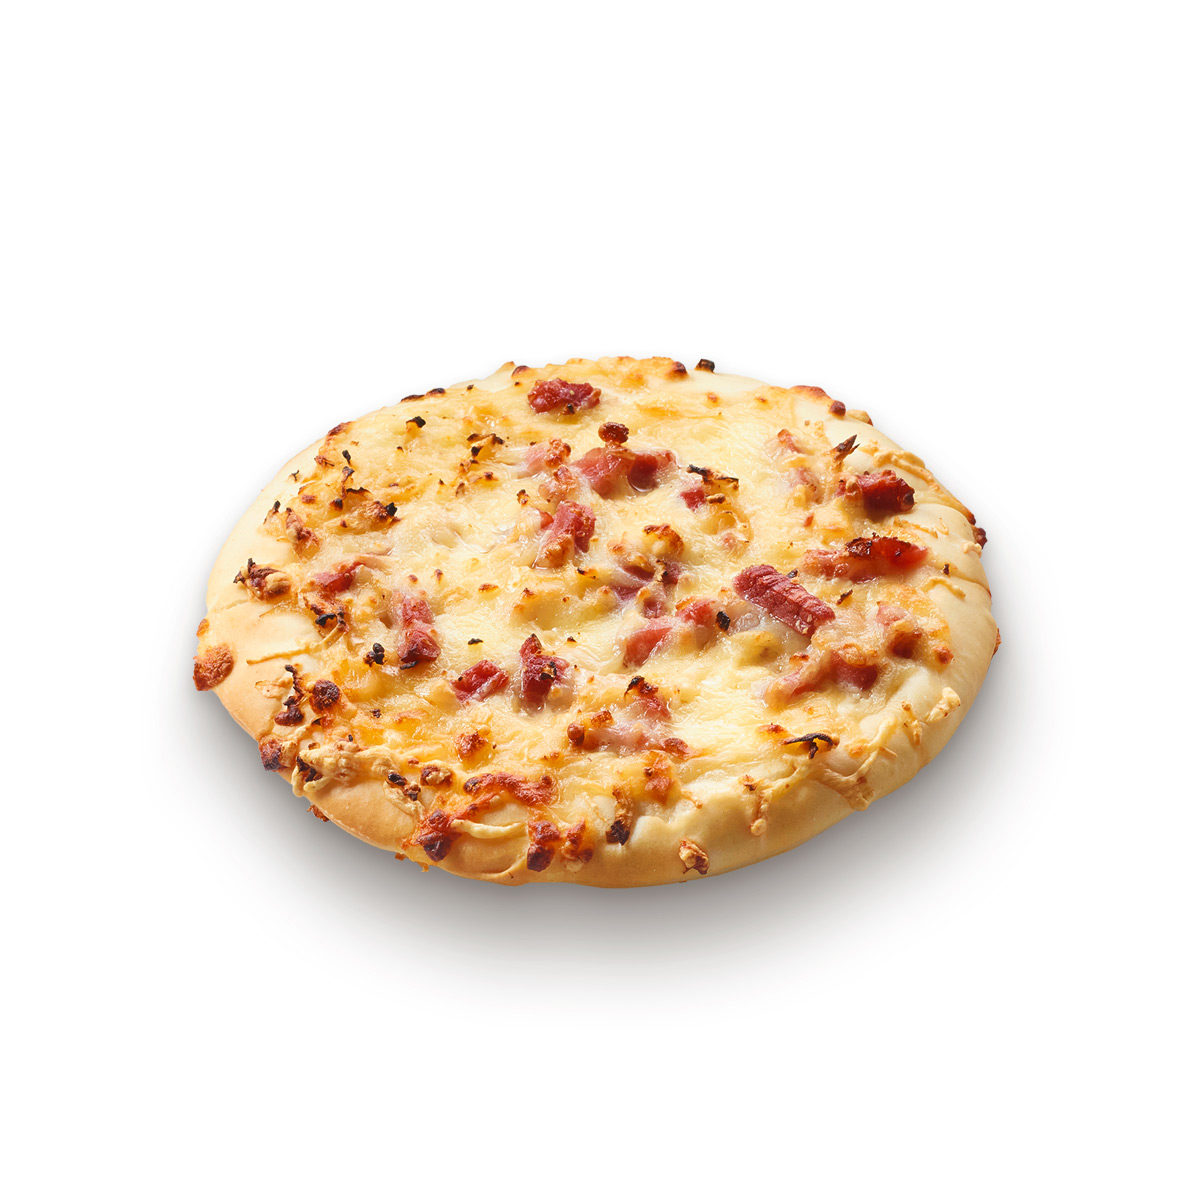 Cheese, bacon and onion pizza